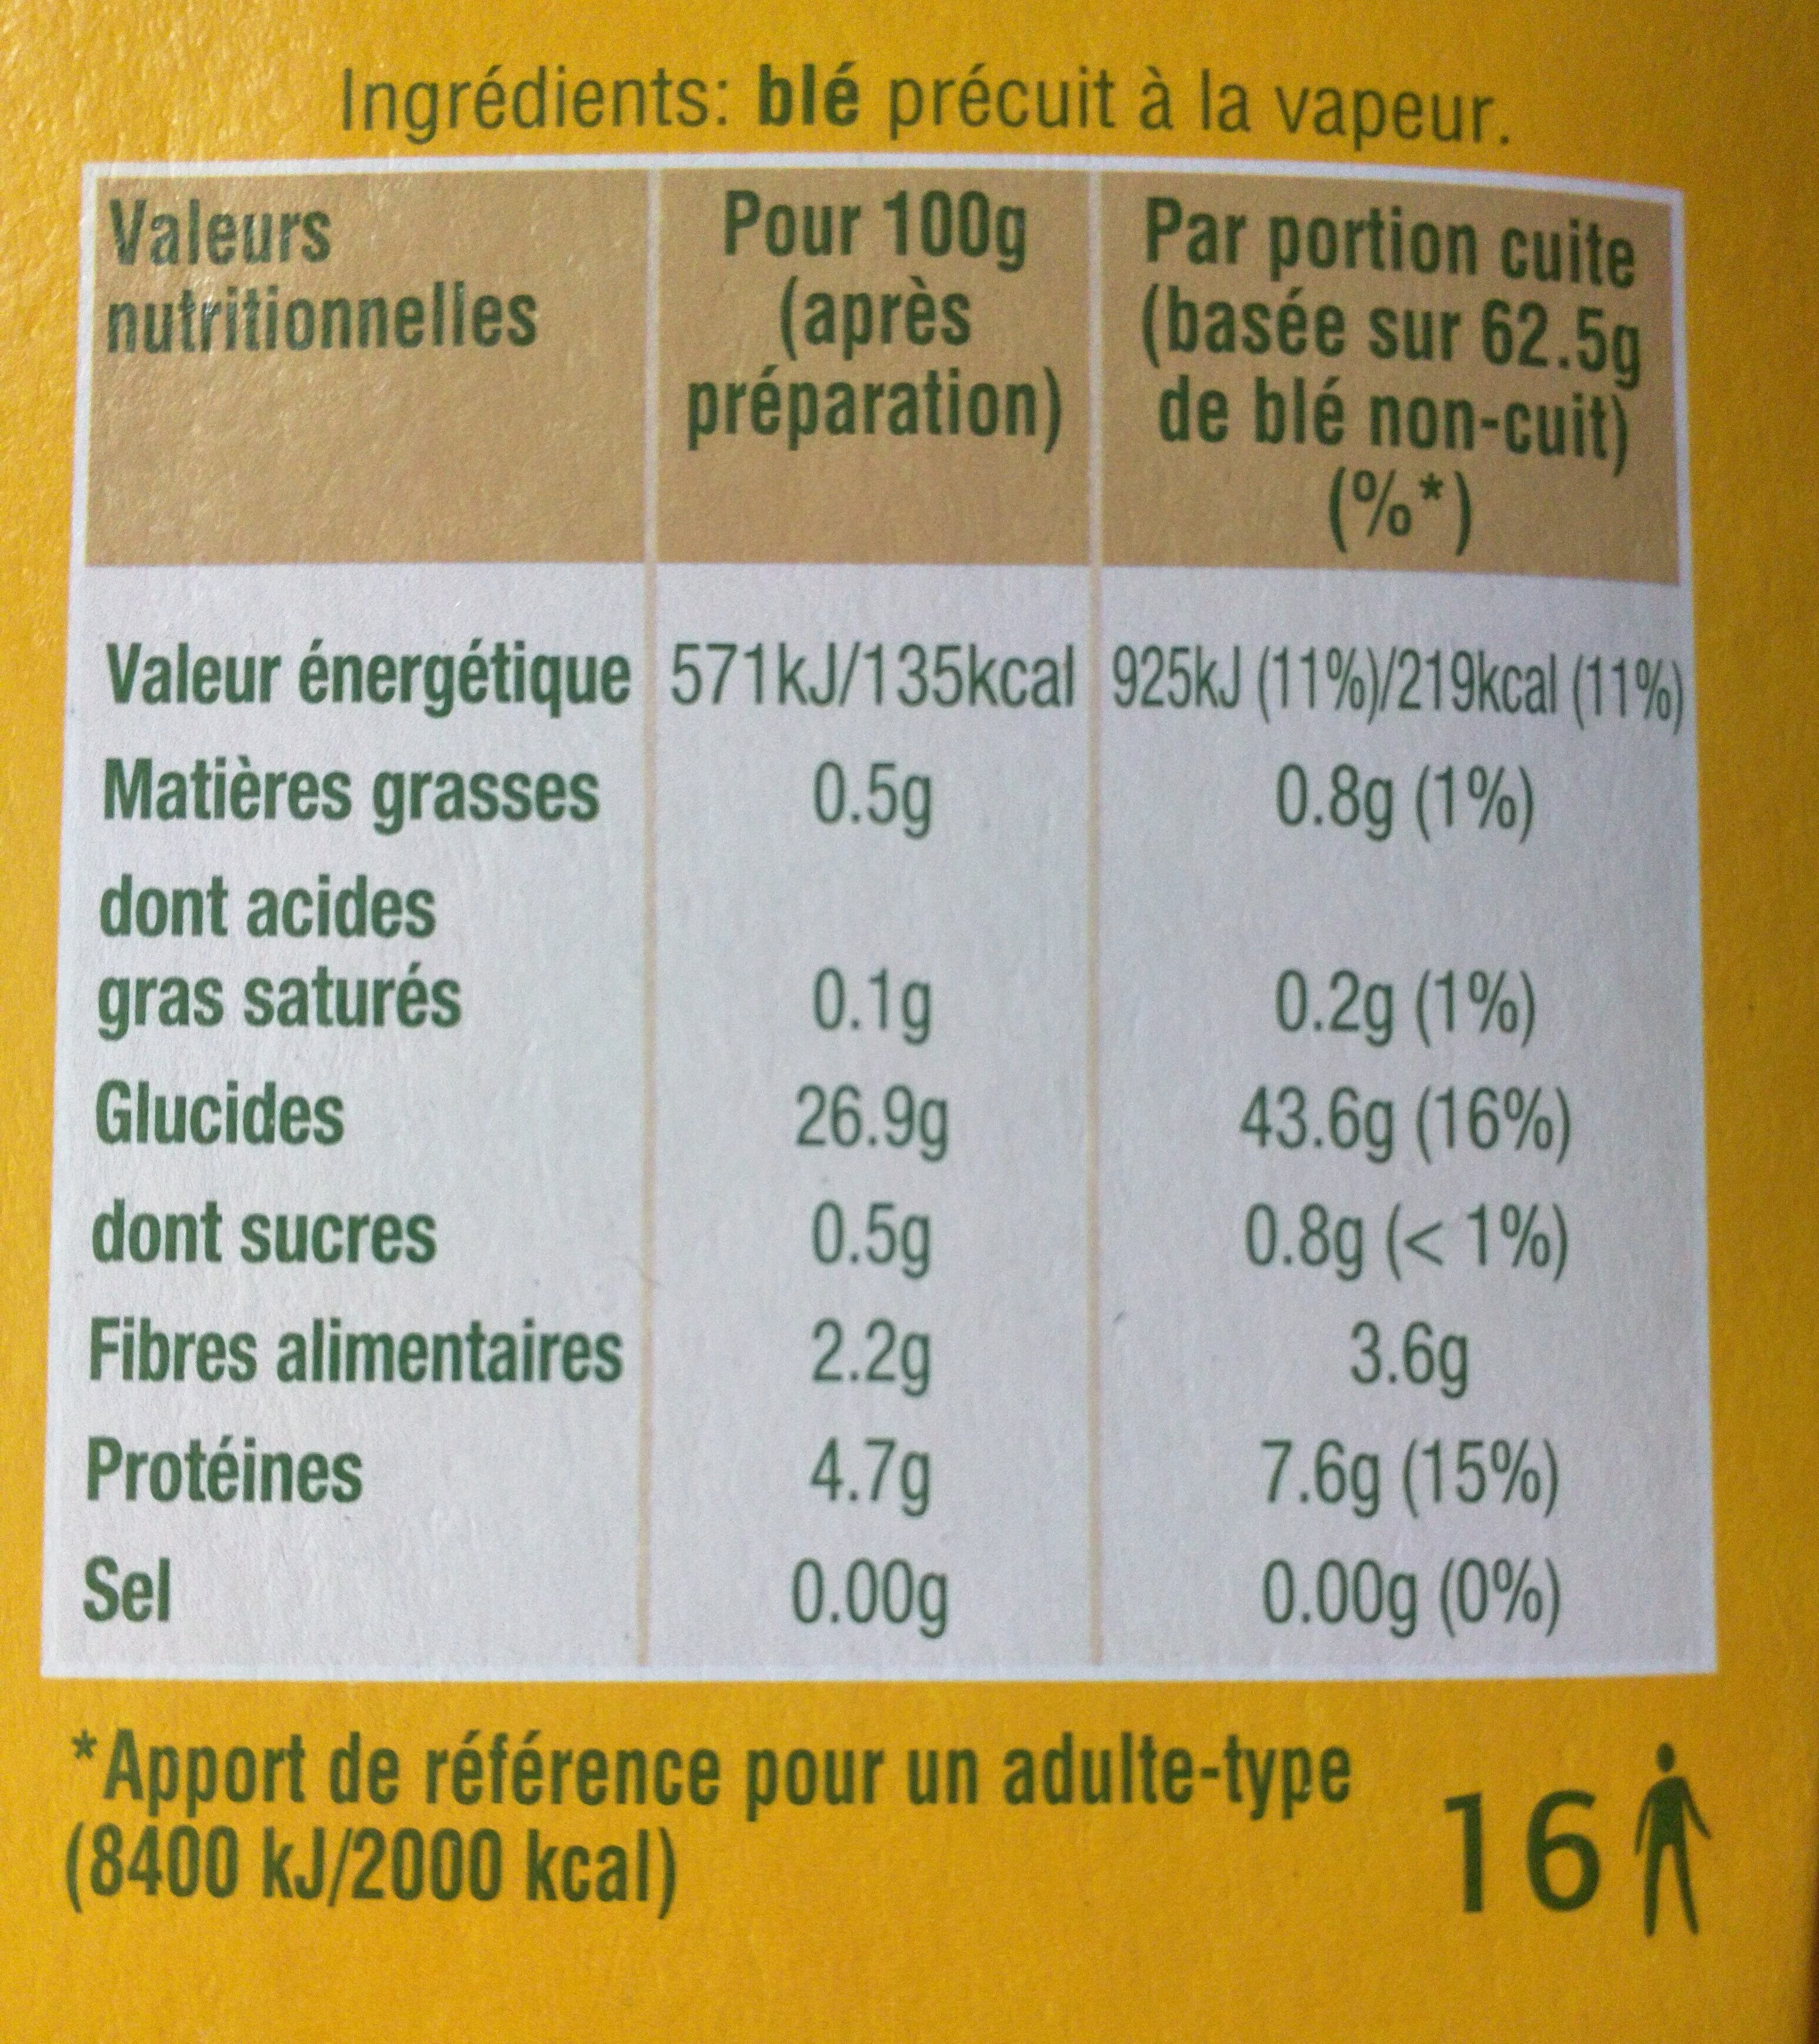 Blé pré-cuit - Ingredients - fr